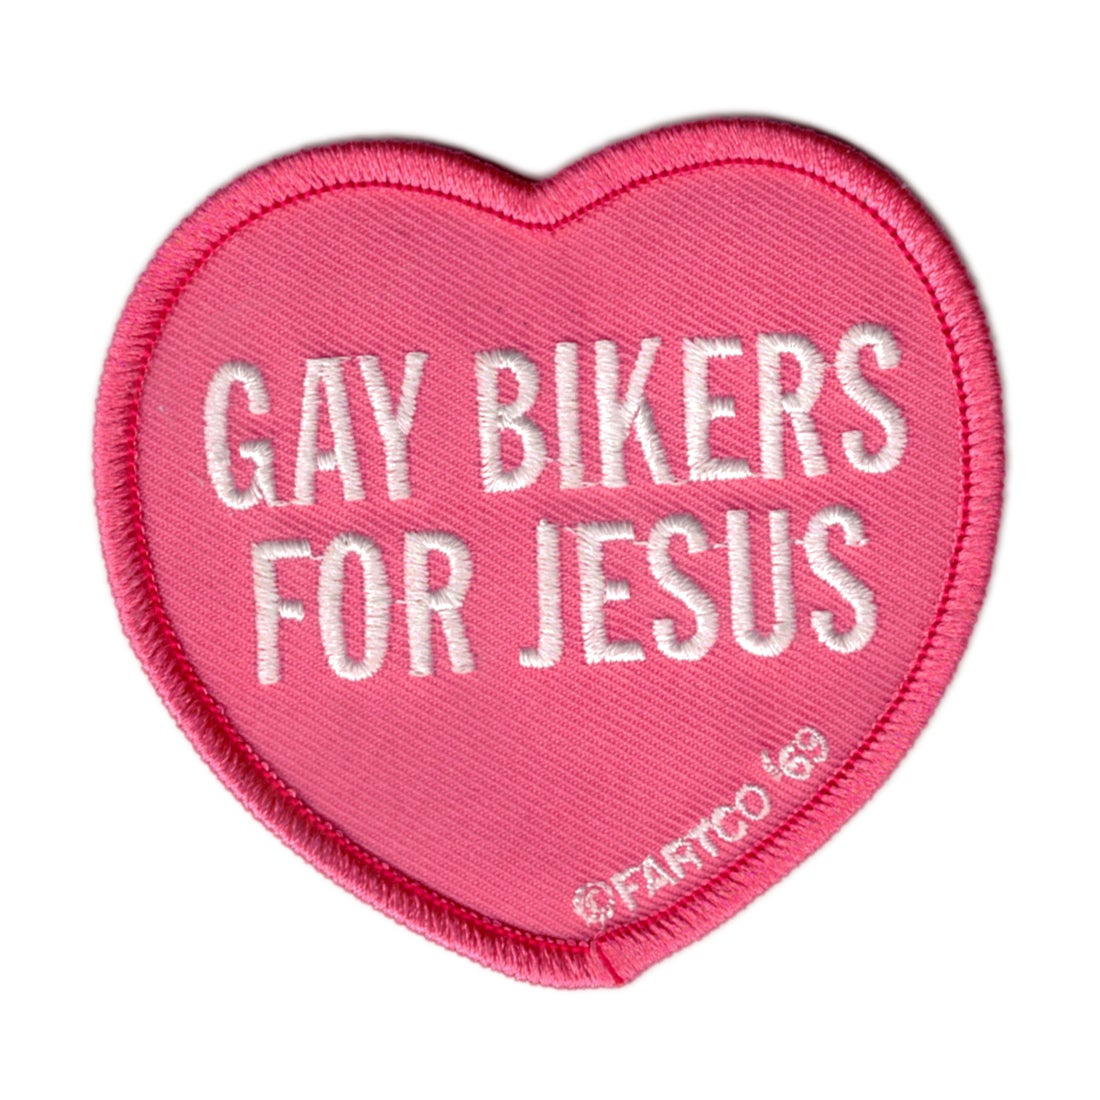 Image of Gay Bikers Patch